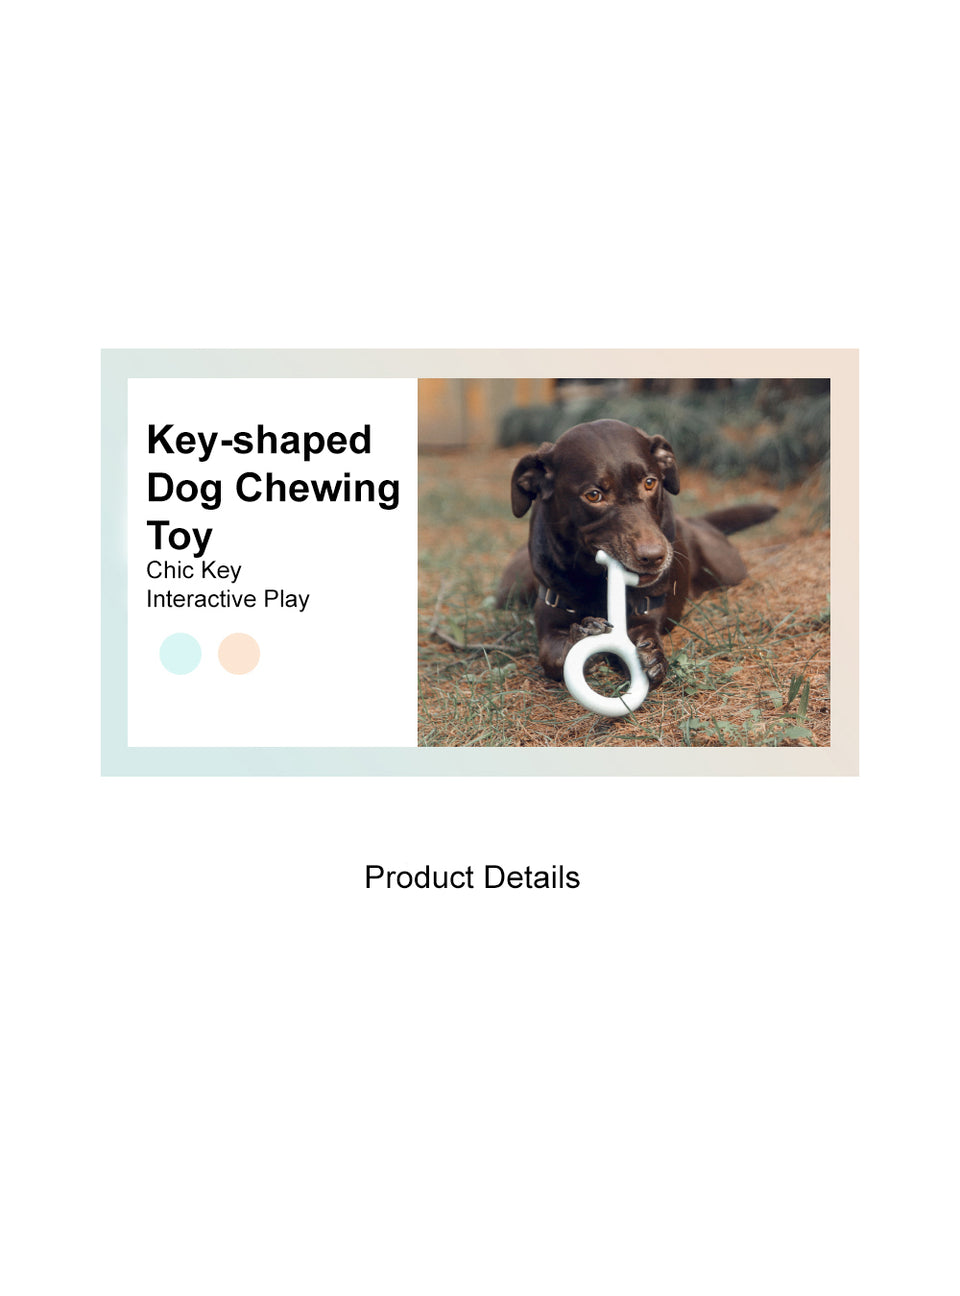 Key-shaped Dog Chewing Toy